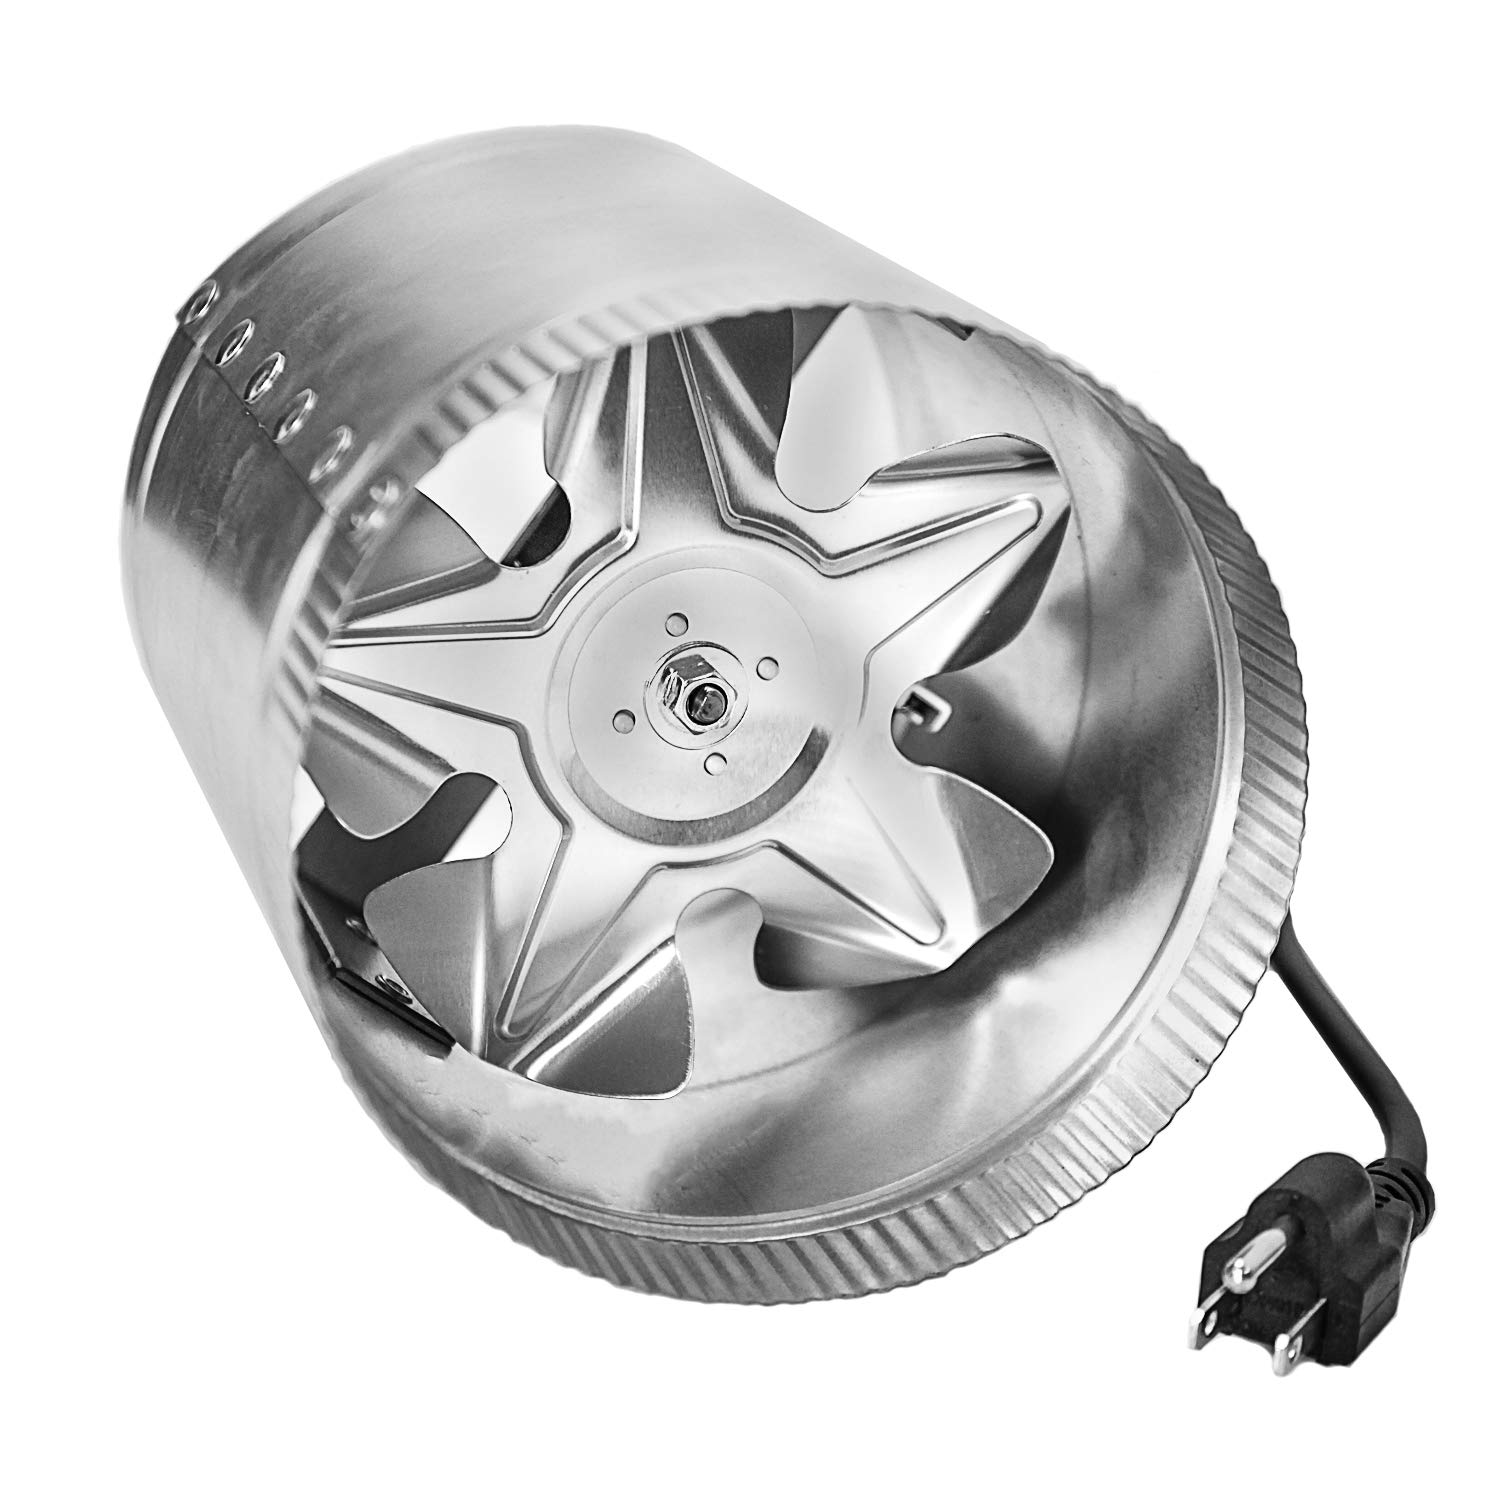 """iPower GLFANXBOOSTER8-a 8 Inch 420 CFM Inline Duct Vent Blower Booster Fan for HVAC Exhaust and Intake 5.5' Grounded Power Cord, Low Noise, 8"""""""